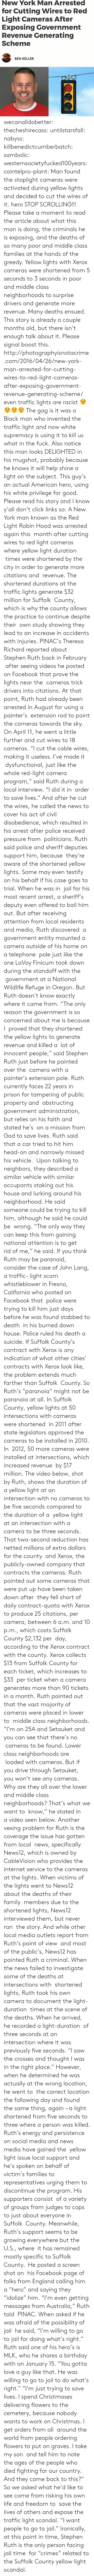 "refuge: New York Man Arrested  for Cutting Wires to Red  Light Cameras After  Exposing Government  Revenue Generating  Scheme  BEN KELLER wecanalldobetter: thecheshirecass:  untilstarsfall:   nabyss:  killbenedictcumberbatch:  sambolic:  westernsocietyfucked100years:  cointelpro-plant: Man found the stoplight cameras were activated during yellow lights and decided to cut the wires of it. hero  STOP SCROLLING!!! Please take a moment to read the article about what this man is doing, the criminals he is exposing, and the deaths of so many poor and middle class families at the hands of the greedy. Yellow lights with Xerox cameras were shortened from 5 seconds to 3 seconds in poor and middle class neighborhoods to surprise drivers and generate more revenue. Many deaths ensued. This story is already a couple months old, but there isn't enough talk about it. Please signal boost this. http://photographyisnotacrime.com/2016/04/26/new-york-man-arrested-for-cutting-wires-to-red-light-cameras-after-exposing-government-revenue-generating-scheme/   even traffic lights are racist  😧😧😧😧  The gag is it was a Black man who invented the traffic light and now white supremacy is using it to kill us what in the fuck.   Also notice this man looks DELIGHTED in his mugshot, probably because he knows it will help shine a light on the subject.  This guy's an actual American hero, using his white privilege for good.  Please read his story and I know y'all don't click links so:  A New York man known as the Red Light Robin Hood was arrested again this  month after cutting wires to red light cameras where yellow light duration  times were shortened by the city in order to generate more citations and  revenue.  The shortened durations at the traffic lights generate $32 million for Suffolk  County, which is why the county allows the practice to continue despite their  own study showing they lead to an increase in accidents with injuries.  PINAC's Theresa Richard reported about Stephen Ruth back in February  after seeing videos he posted on Facebook that prove the lights near the  cameras trick drivers into citations.  At that point, Ruth had already been arrested in August for using a painter's  extension rod to point the cameras towards the sky.  On April 11, he went a little further and cut wires to 18 cameras.  ""I cut the cable wires, making it useless. I've made it  dysfunctional, just like the whole red-light camera  program,"" said Ruth during a local interview. ""I did it in  order to save lives.""  And after he cut the wires, he called the news to cover his act of civil  disobedience, which resulted in his arrest after police received pressure from  politicians. Ruth said police and sheriff deputies support him, because  they're aware of the shortened yellow lights.  Some may even testify on his behalf if his case goes to trial. When he was in  jail for his most recent arrest, a sheriff's deputy even offered to bail him out.  But after receiving attention from local residents and media, Ruth discovered  a government entity mounted a camera outside of his home on a telephone  pole just like the one LaVoy Finicum took down during the standoff with the  government at a National Wildlife Refuge in Oregon.  But Ruth doesn't know exactly where it came from.  ""The only reason the government is so concerned about me is because I  proved that they shortened the yellow lights to generate revenue and killed a  lot of innocent people,"" said Stephen Ruth just before he painted over the  camera with a painter's extension pole.  Ruth currently faces 22 years in prison for tampering of public property and  obstructing government administration, but relies on his faith and stated he's  on a mission from God to save lives.  Ruth said that a car tried to hit him head-on and narrowly missed his vehicle.  Upon talking to neighbors, they described a similar vehicle with similar  occupants staking out his house and lurking around his neighborhood.  He said someone could be trying to kill him, although he said he could be  wrong.  ""The only way they can keep this from gaining national attention is to get rid of me,"" he said.  If you think Ruth may be paranoid, consider the case of John Lang, a traffic- light scam whistleblower in Fresno, California who posted on Facebook that  police were trying to kill him just days before he was found stabbed to death  in his burned down house.  Police ruled his death a suicide.  If Suffolk County's contract with Xerox is any indication of what other cities'  contracts with Xerox look like, the problem extends much farther than Suffolk  County. So Ruth's ""paranoia"" might not be paranoia at all.  In Suffolk County, yellow lights at 50 intersections with cameras were shortened  in 2011 after state legislators approved the cameras to be installed in 2010. In  2012, 50 more cameras were installed at intersections, which increased revenue  by $17 million.  The video below, shot by Ruth, shows the duration of a yellow light at an  intersection with no cameras to be five seconds compared to the duration of a  yellow light at an intersection with a camera to be three seconds.  That two-second reduction has netted millions of extra dollars for the county  and Xerox, the publicly-owned company that contracts the cameras.  Ruth pointed out some cameras that were put up have been taken down after  they fell short of daily contract-quota with Xerox to produce 25 citations, per  camera, between 6 a.m. and 10 p.m., which costs Suffolk County $2,132 per  day, according to the Xerox contract with the county.  Xerox collects $13 from Suffolk County for each ticket, which increases to $33  per ticket when a camera generates more than 90 tickets in a month.  Ruth pointed out that the vast majority of cameras were placed in lower to  middle class neighborhoods.  ""I'm on 25A and Setauket and you can see that there's no  cameras to be found. Lower class neighborhoods are  loaded with cameras. But if you drive through Setauket,  you won't see any cameras. Why are they all over the lower  and middle class neighborhoods? That's what we want to  know,"" he stated in a video seen below.  Another vexing problem for Ruth is the coverage the issue has gotten from local  news, specifically News12, which is owned by CableVision who provides the  internet service to the cameras at the lights.  When victims of the lights went to News12 about the deaths of their family  members due to the shortened lights, News12 interviewed them, but never ran  the story. And while other local media outlets report from Ruth's point of view  and most of the public's, News12 has painted Ruth a criminal.  When the news failed to investigate some of the deaths at intersections with  shortened lights, Ruth took his own camera to document the light-duration  times at the scene of the deaths. When he arrived, he recorded a light-duration  of three seconds at an intersection where it was previously five seconds.  ""I saw the crosses and thought I was in the right place.""  However, when he determined he was actually at the wrong location, he went to  the correct location the following day and found the same thing, again – a light  shortened from five seconds to three where a person was killed.  Ruth's energy and persistence on social media and news media have gained the  yellow light issue local support and he's spoken on behalf of victim's families to  representatives urging them to discontinue the program. His supporters consist  of a variety of groups from judges to cops to just about everyone in Suffolk  County.  Meanwhile, Ruth's support seems to be growing everywhere but the U.S., where  it has remained mostly specific to Suffolk County.  He posted a screen shot on  his Facebook page of folks from England calling him a ""hero"" and saying they  ""idolize"" him.  ""I'm even getting messages from Australia,"" Ruth told  PINAC. When asked if he was afraid of the possibility of jail  he said, ""I'm willing to go to jail for doing what's right.""  Ruth said one of his hero's is MLK, who he shares a birthday with on January 15.  ""You gotta love a guy like that. He was willing to go to jail to do what's right."" ""I'm just trying to save lives. I spend Christmases delivering flowers to the  cemetery, because nobody wants to work on Christmas. I get orders from all  around the world from people ordering flowers to put on graves. I take my son  and tell him to note the ages of the people who died fighting for our country.  And they come back to this?""  So we asked what he'd like to see come from risking his own life and freedom to  save the lives of others and expose the traffic light scandal.  ""I want people to go to jail.""  Ironically, at this point in time, Stephen Ruth is the only person facing jail time  for ""crimes"" related to the Suffolk County yellow light scandal."